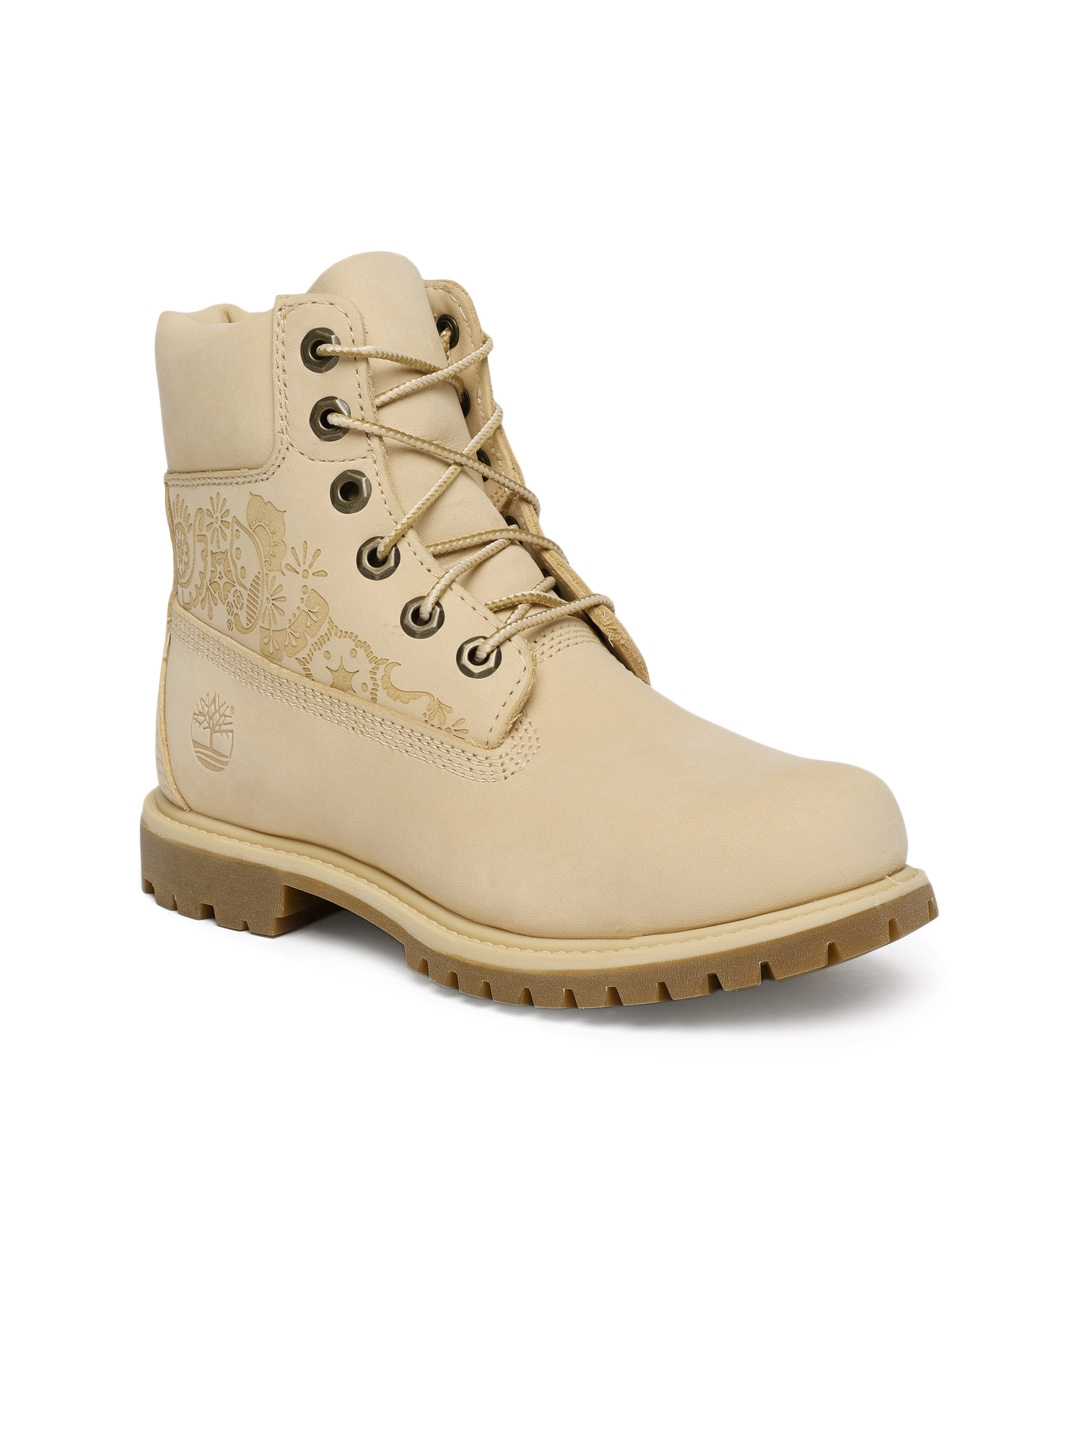 46828ffdce50 Buy timberland women beige high top premium waterproof boots jpg 1080x1440 Timberland  wedges for women